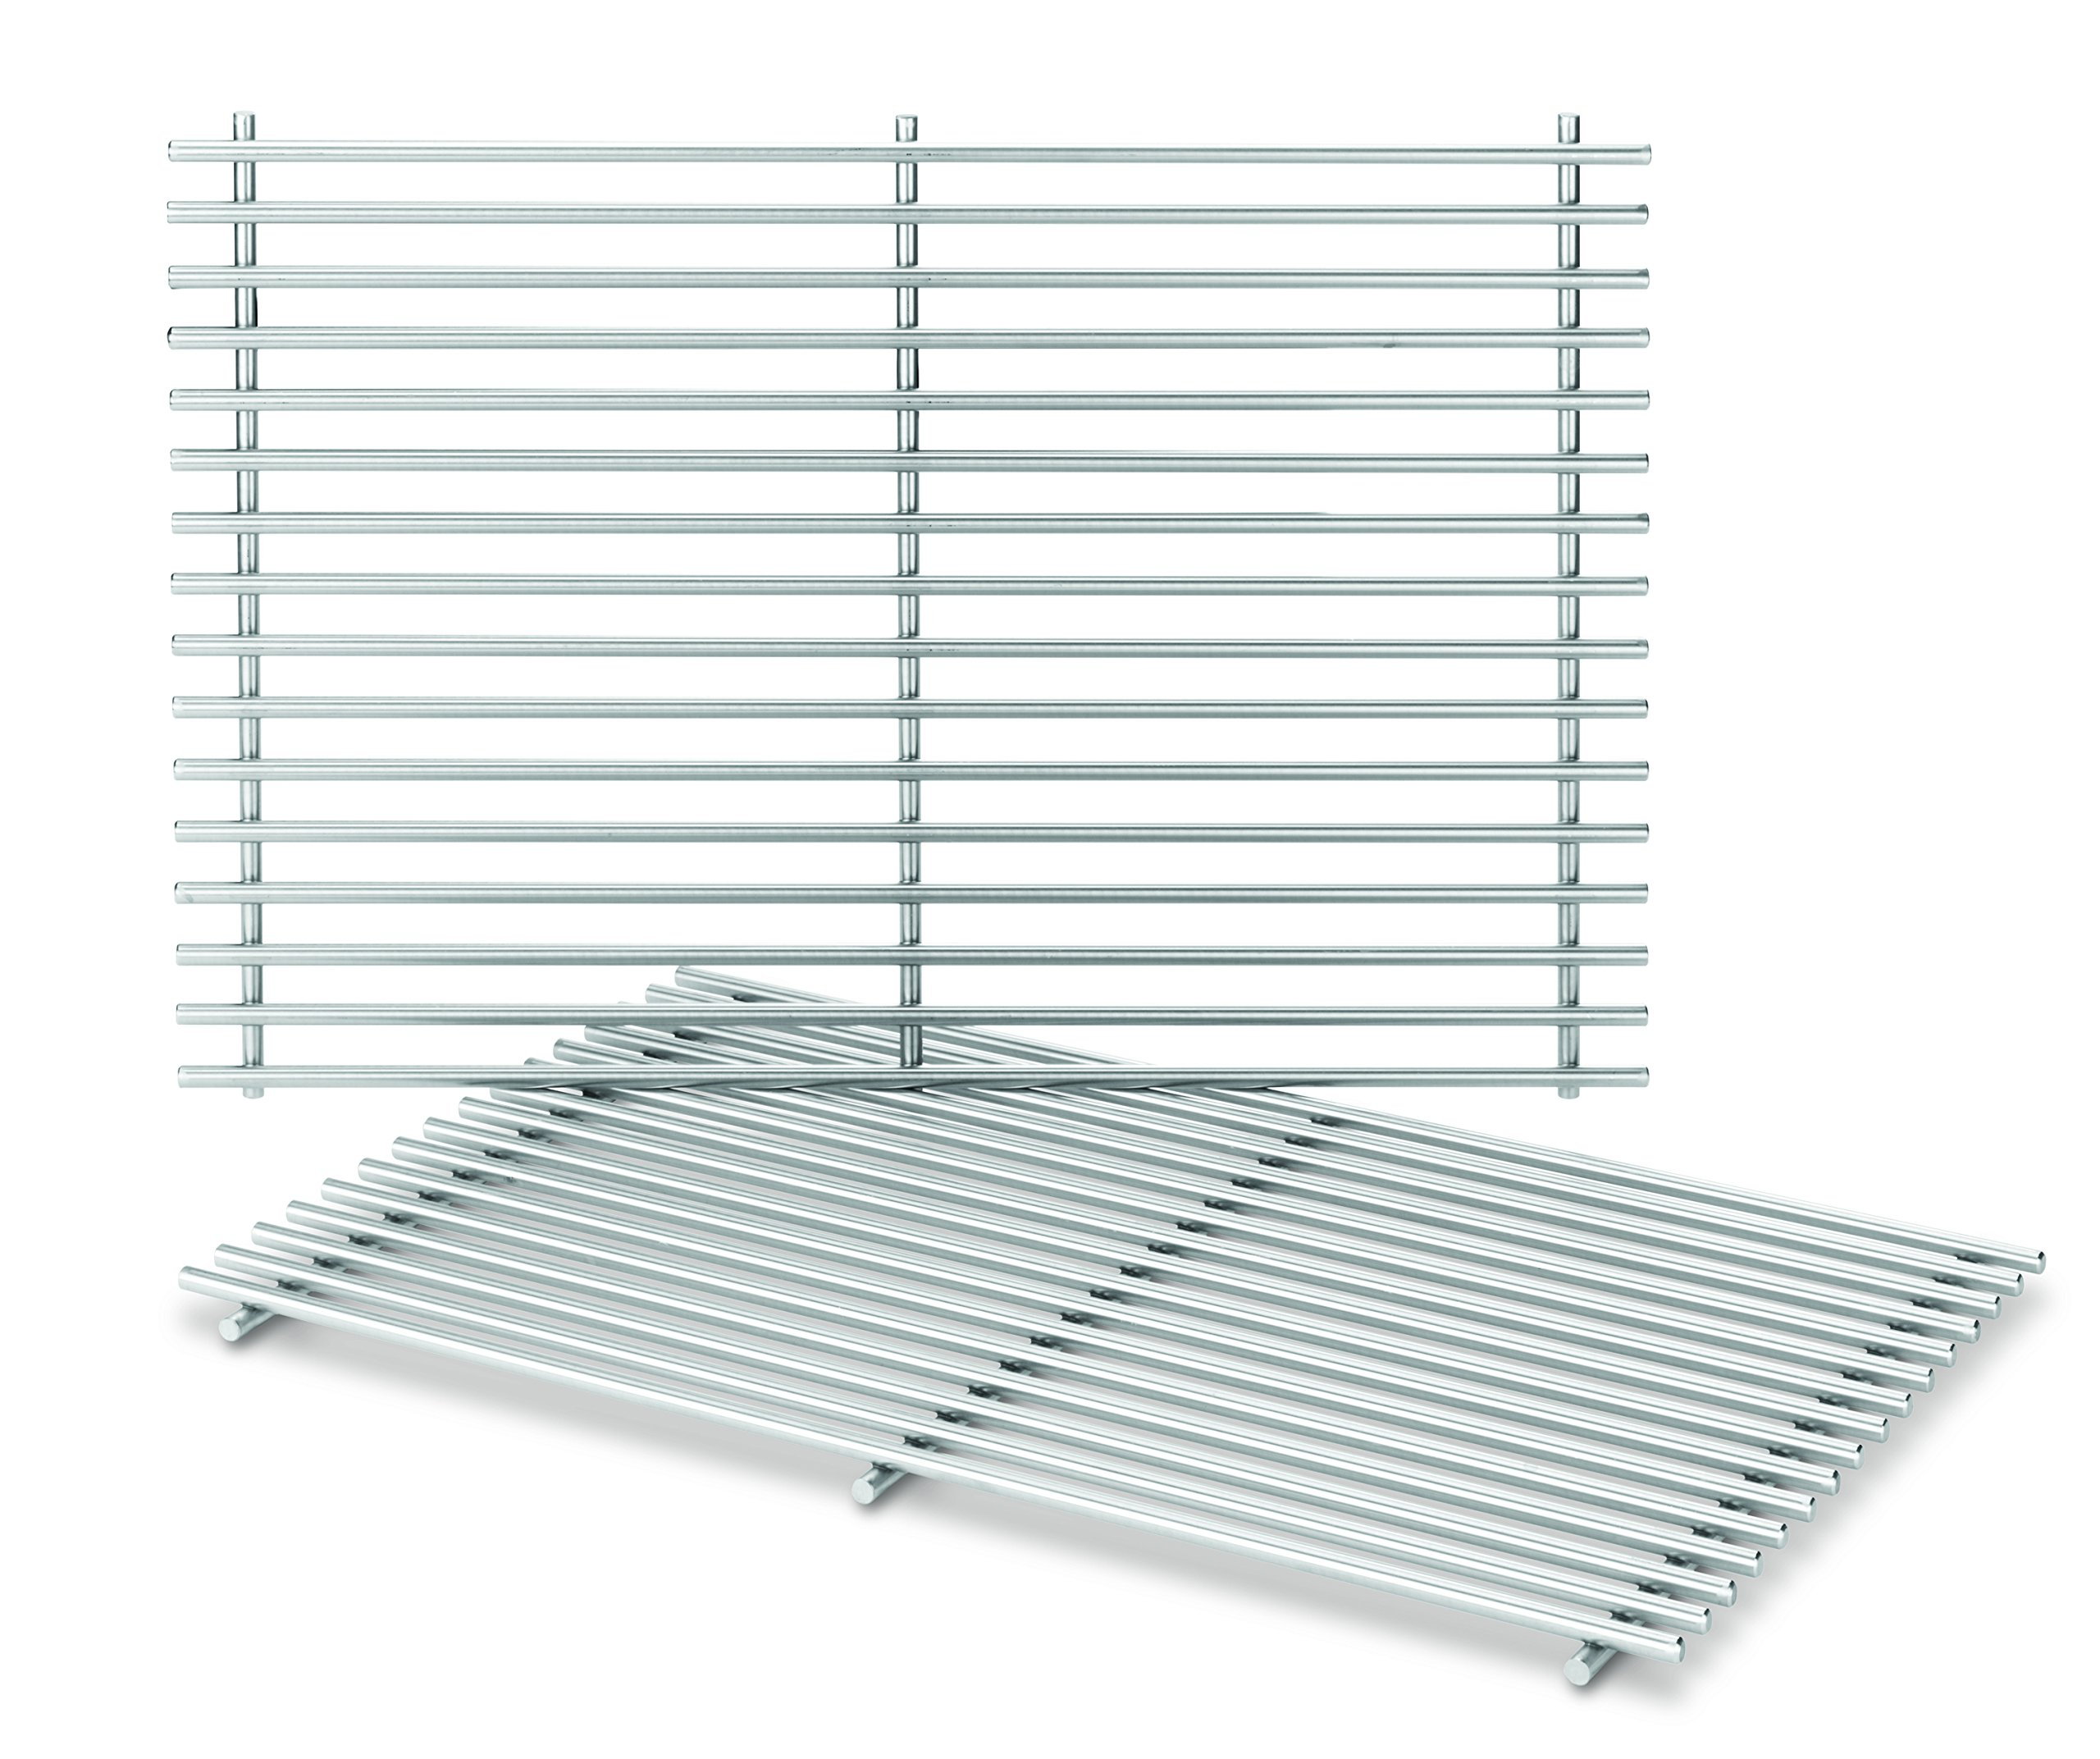 Weber-Stephen Products 7639 2pk Stainless Steel Cooking Grate (17.3 x 11.8 x 0.5) by Weber